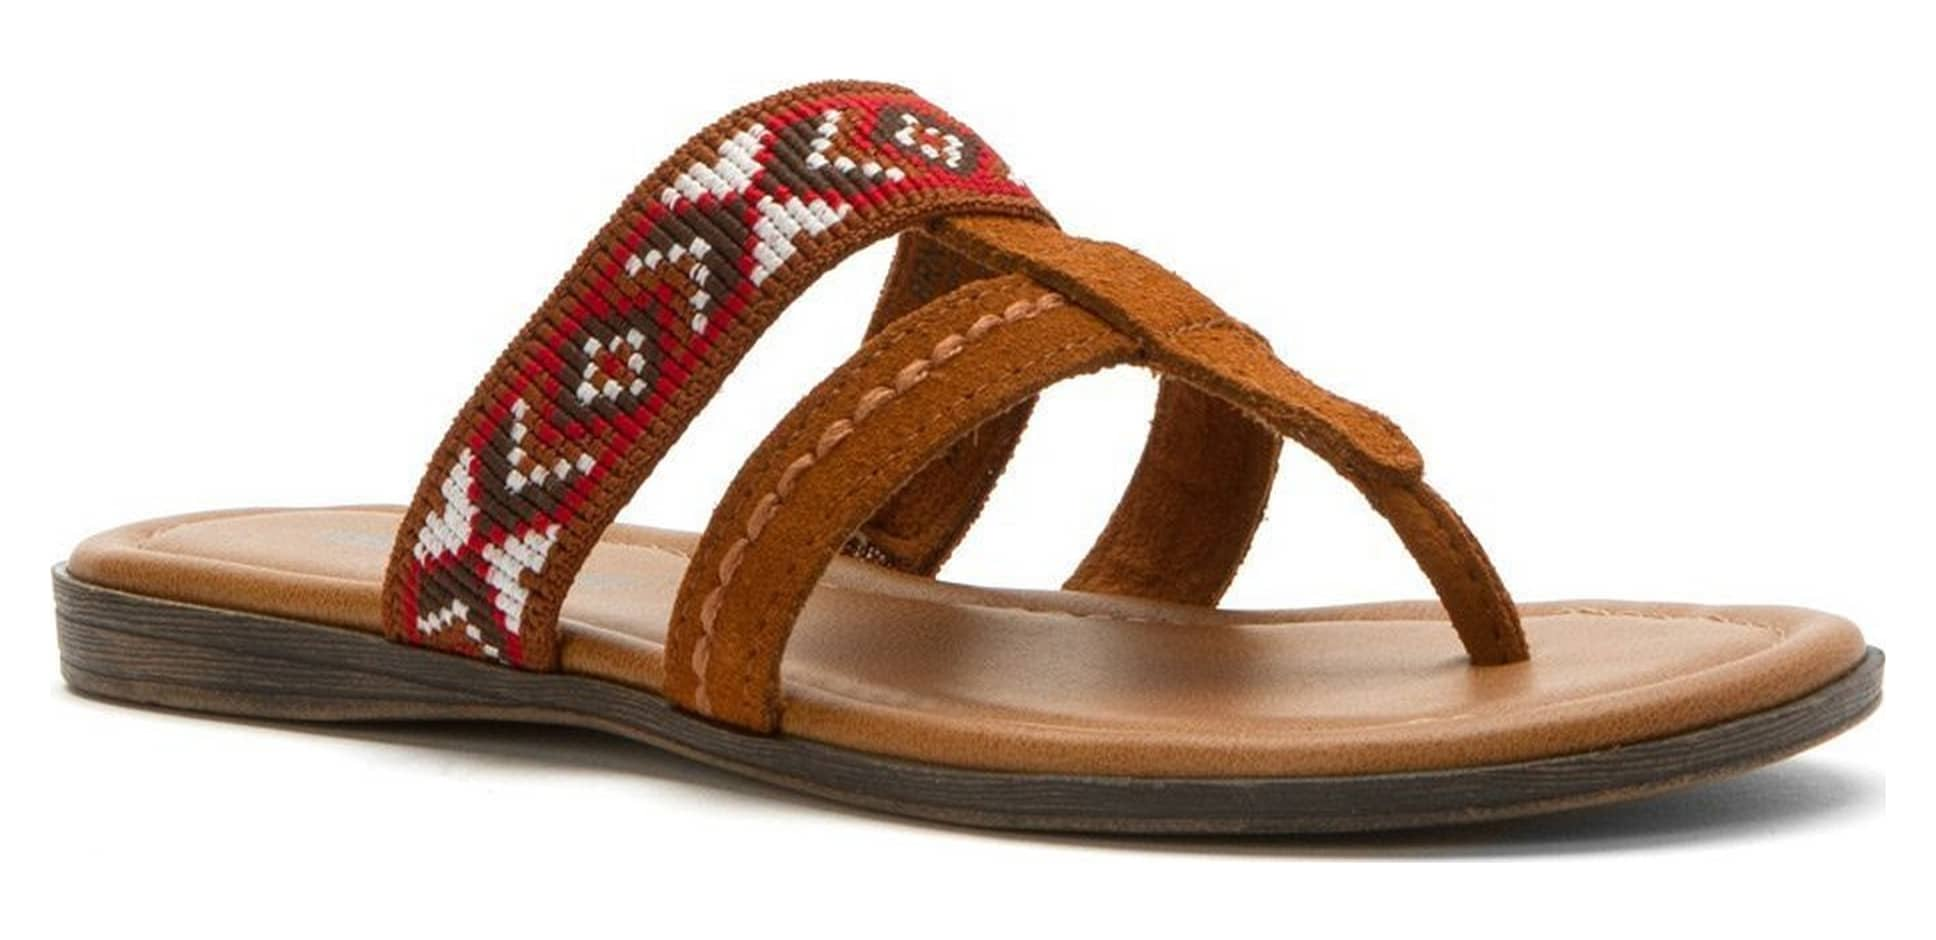 Find Sanuk sandals and shoes for sale online at 2kins4.cf From the beach to the BBQ, Sanuk continues to drive creativity, innovation and fun. Free shipping available.